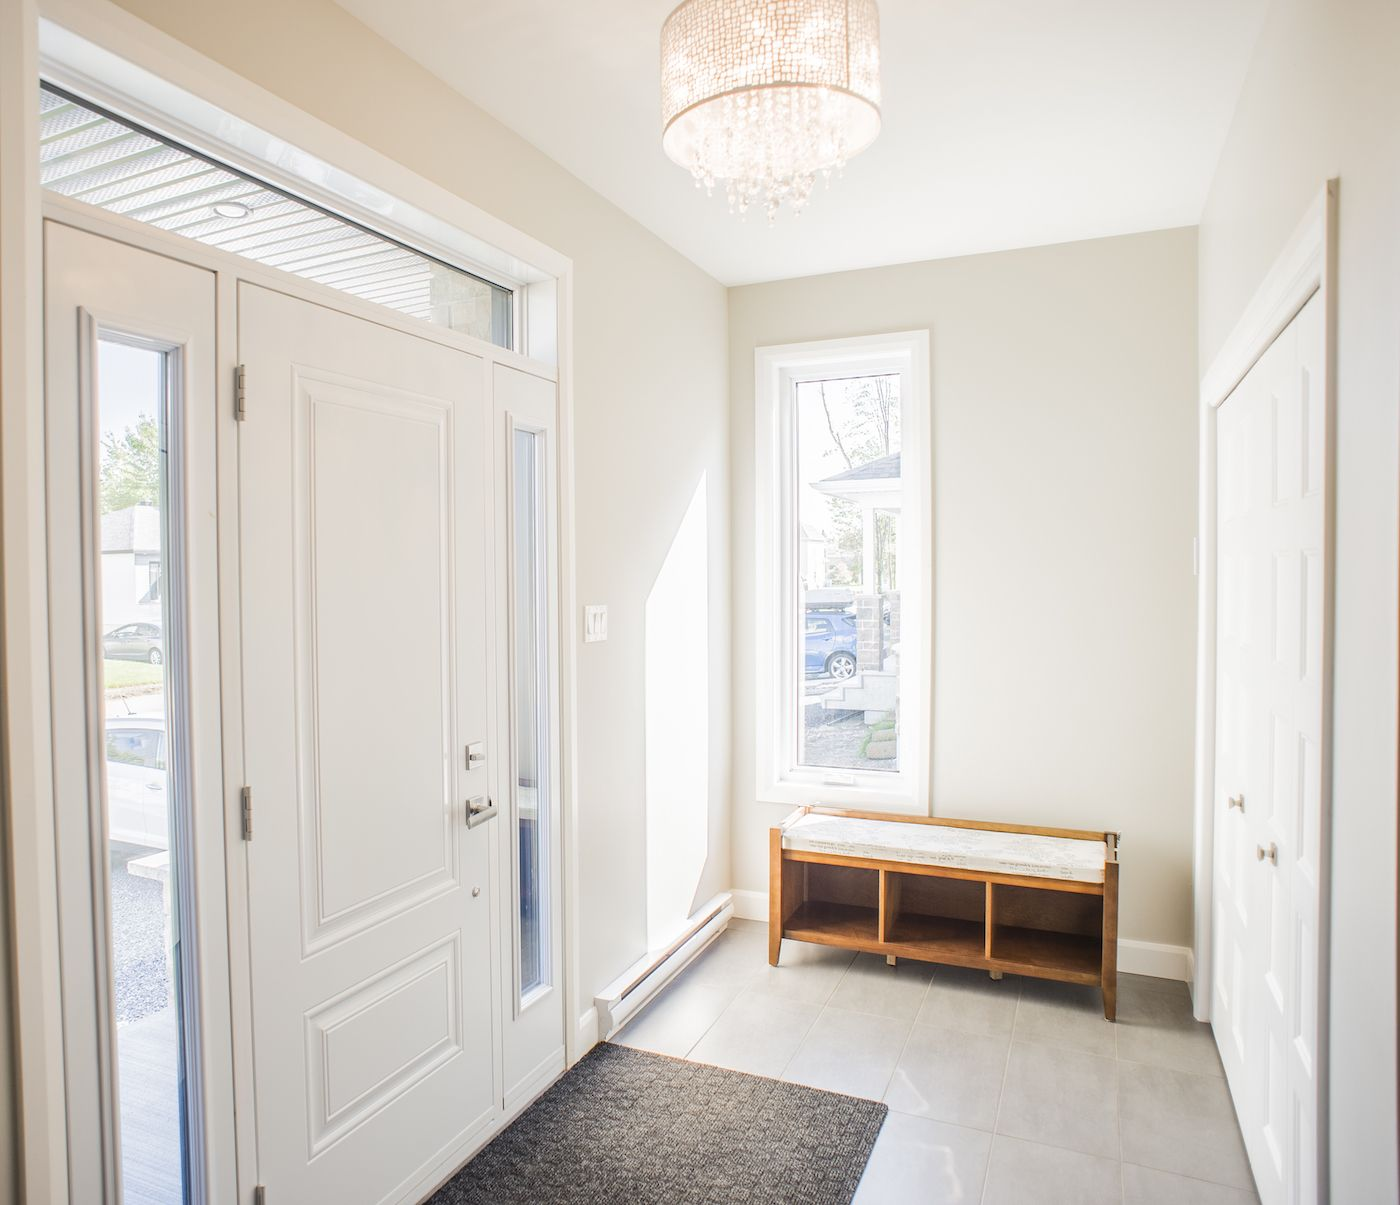 Large windowed door. White trim and white doors as accents. & Spacious main entry. Large windowed door. White trim and white doors ...